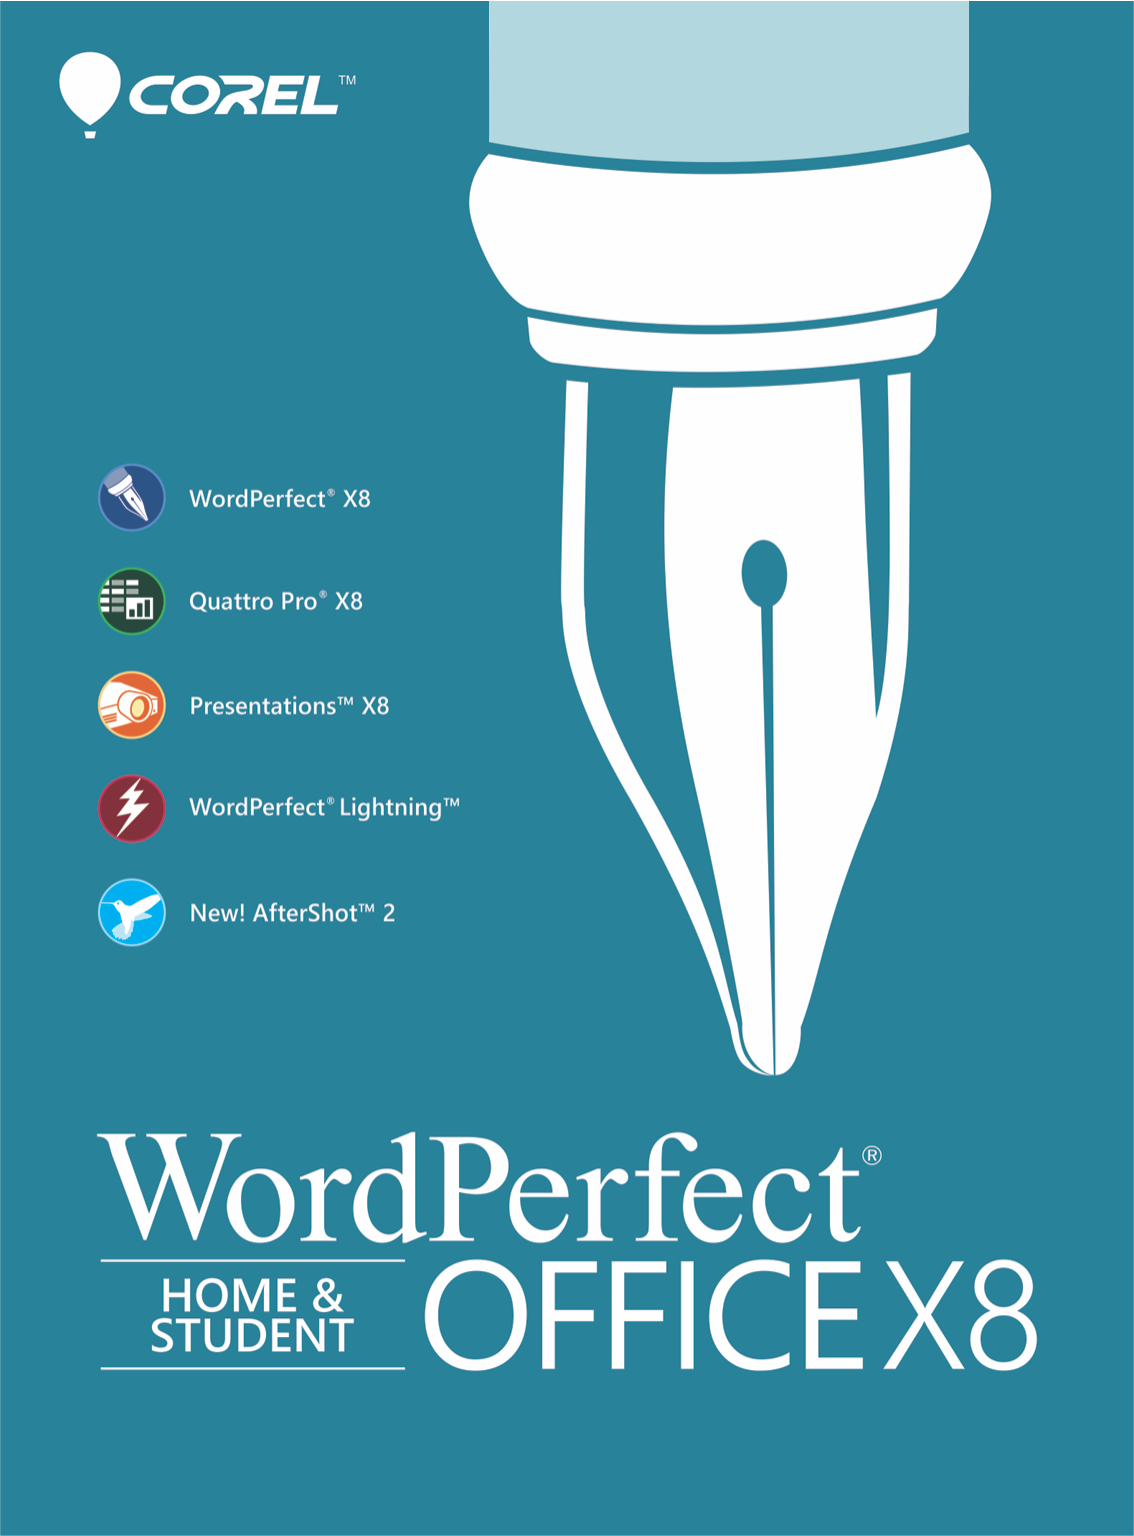 WordPerfect Office X8 Home & Student